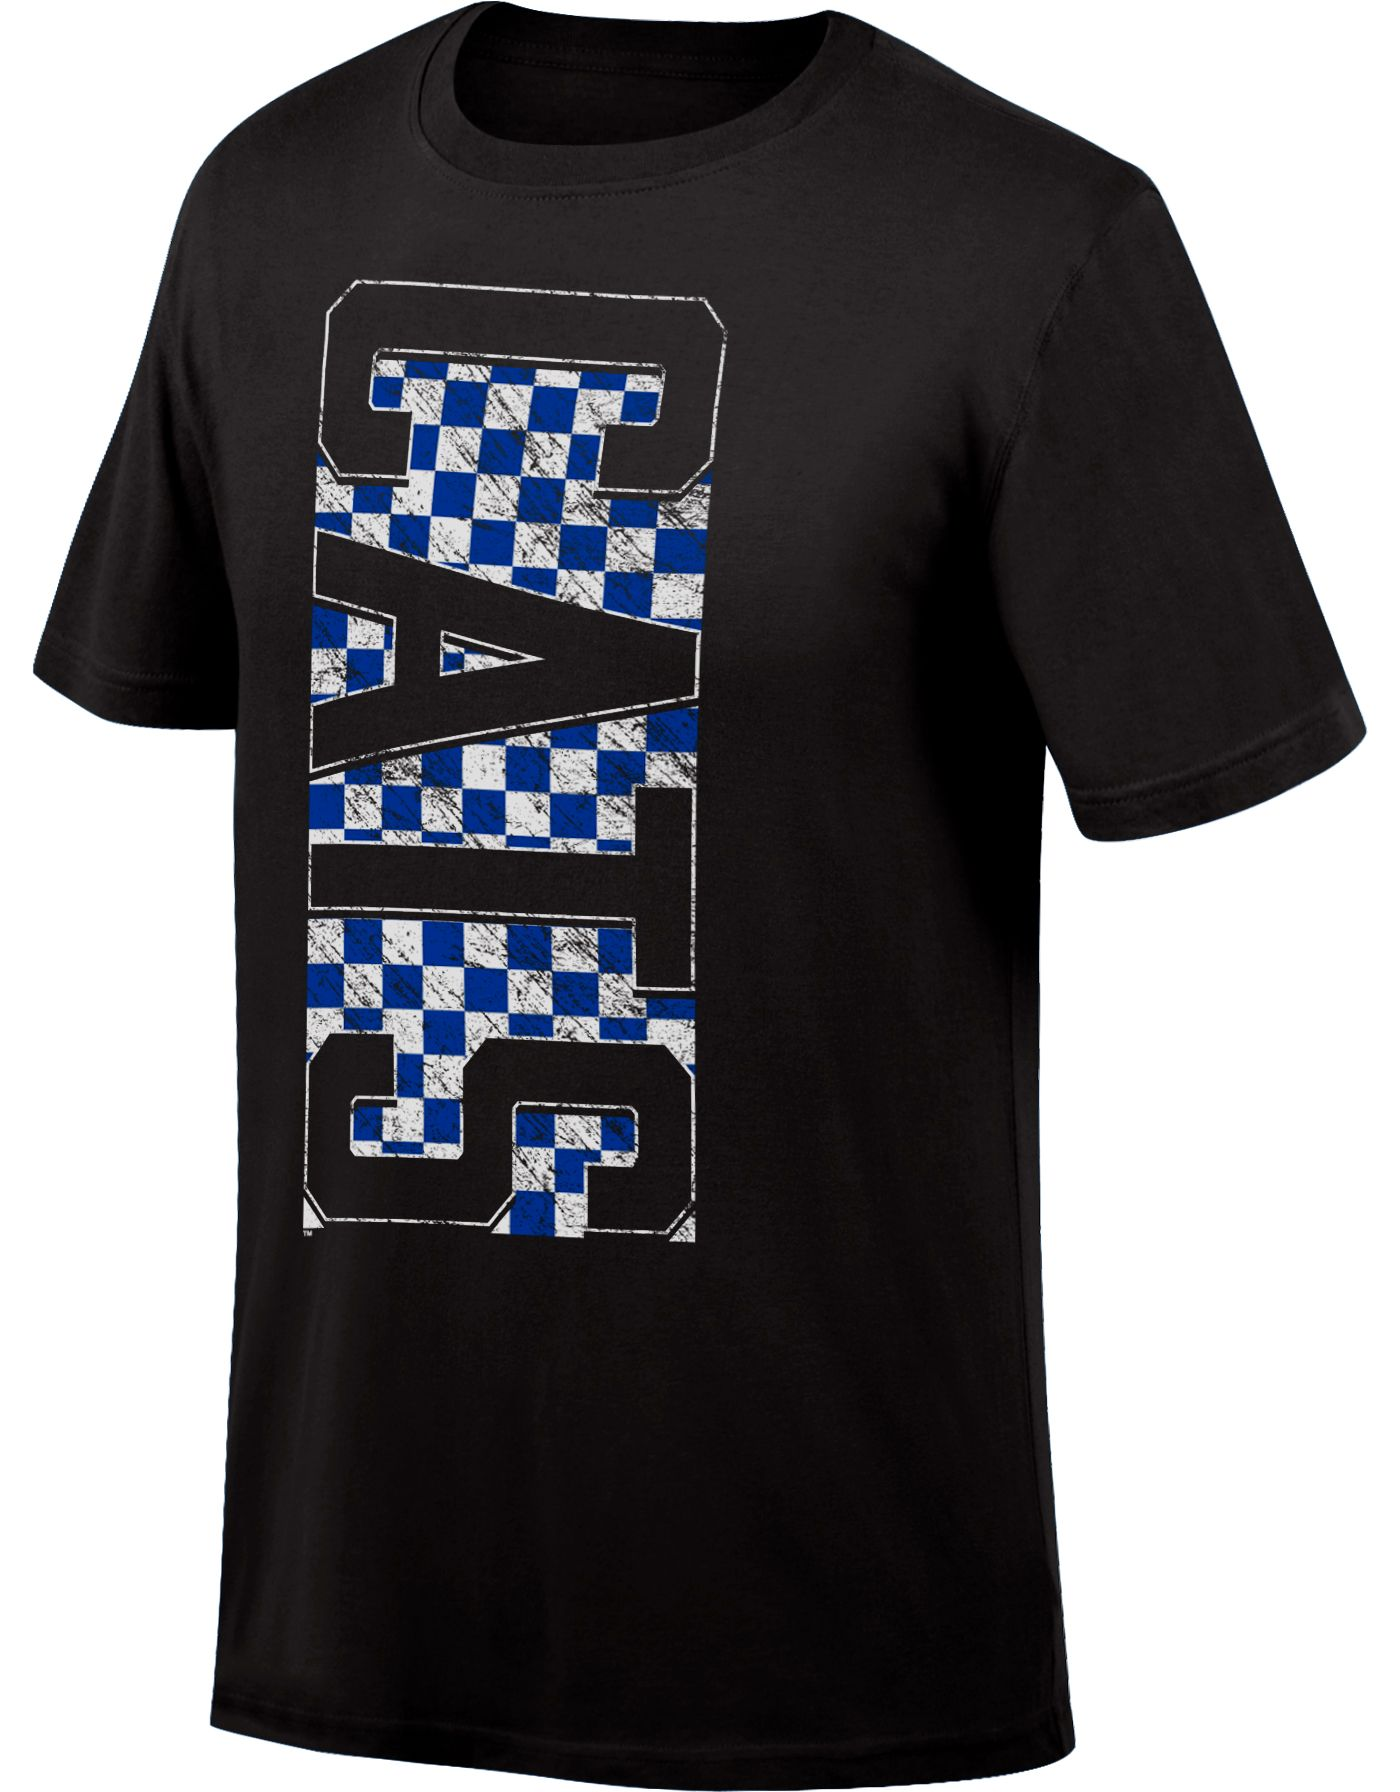 Top of the World Youth Kentucky Wildcats Choice Black T-Shirt